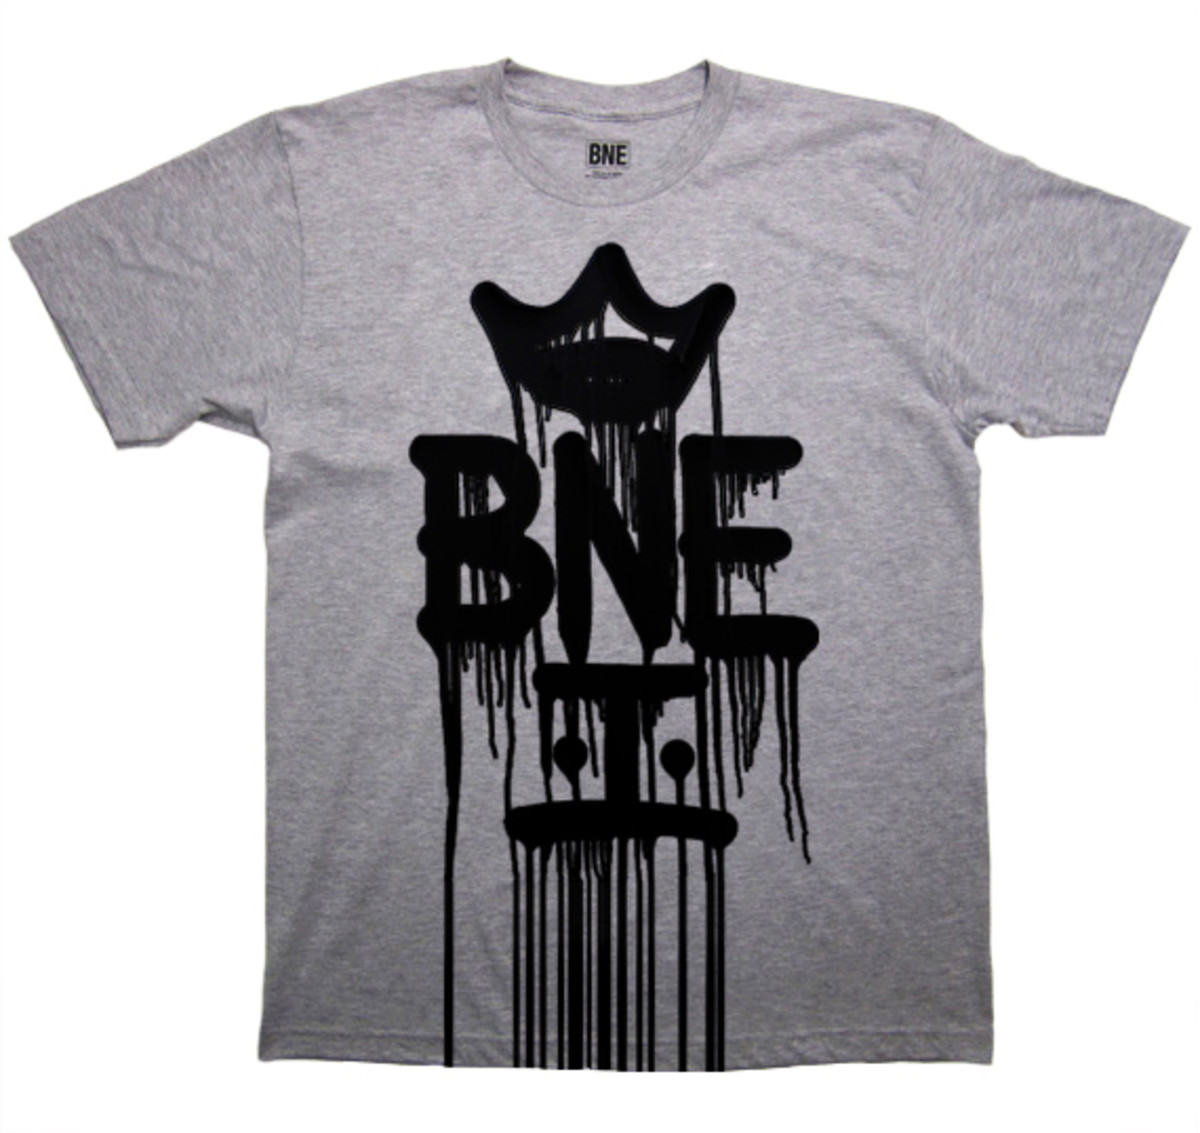 bne-water-foundation-fall-2012-t-shirt-collection-delivery-2-05